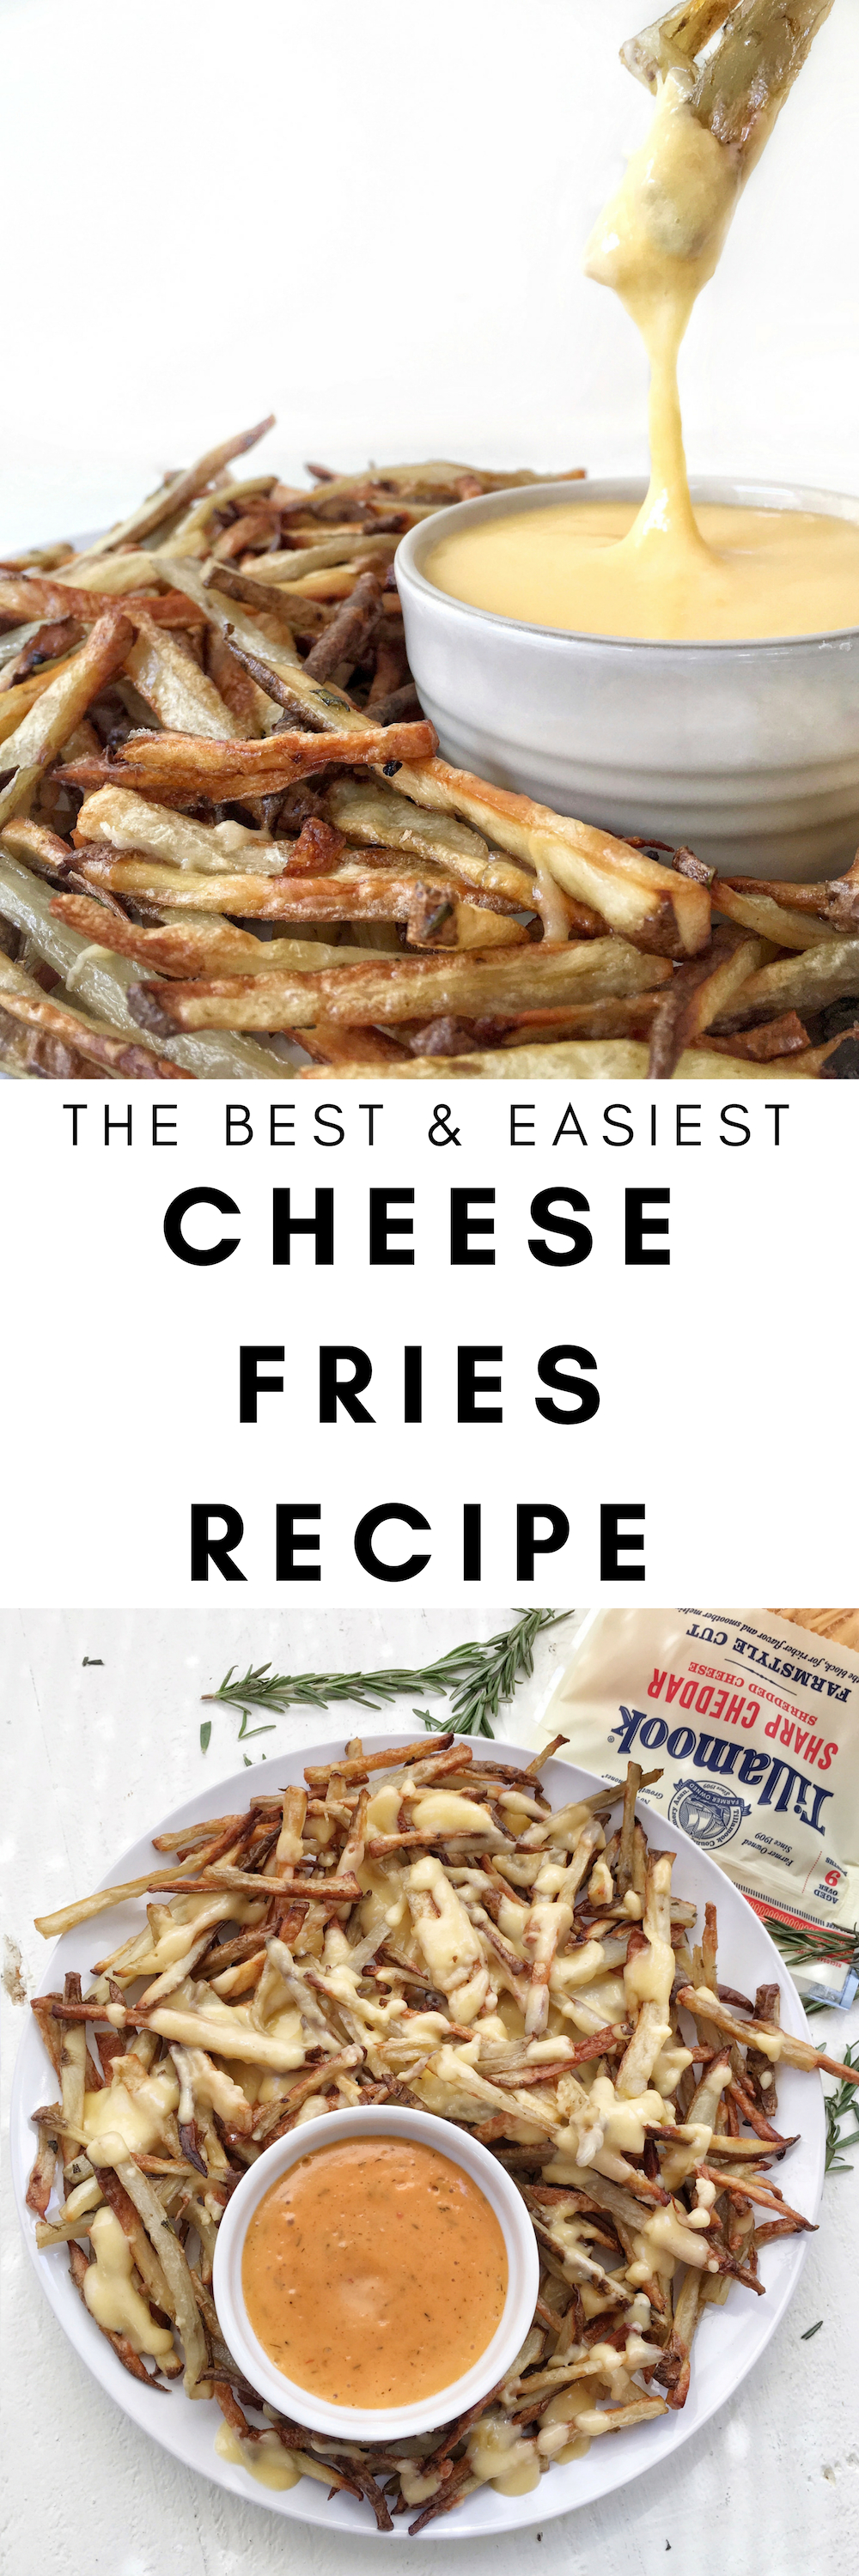 the best & easiest cheese fries